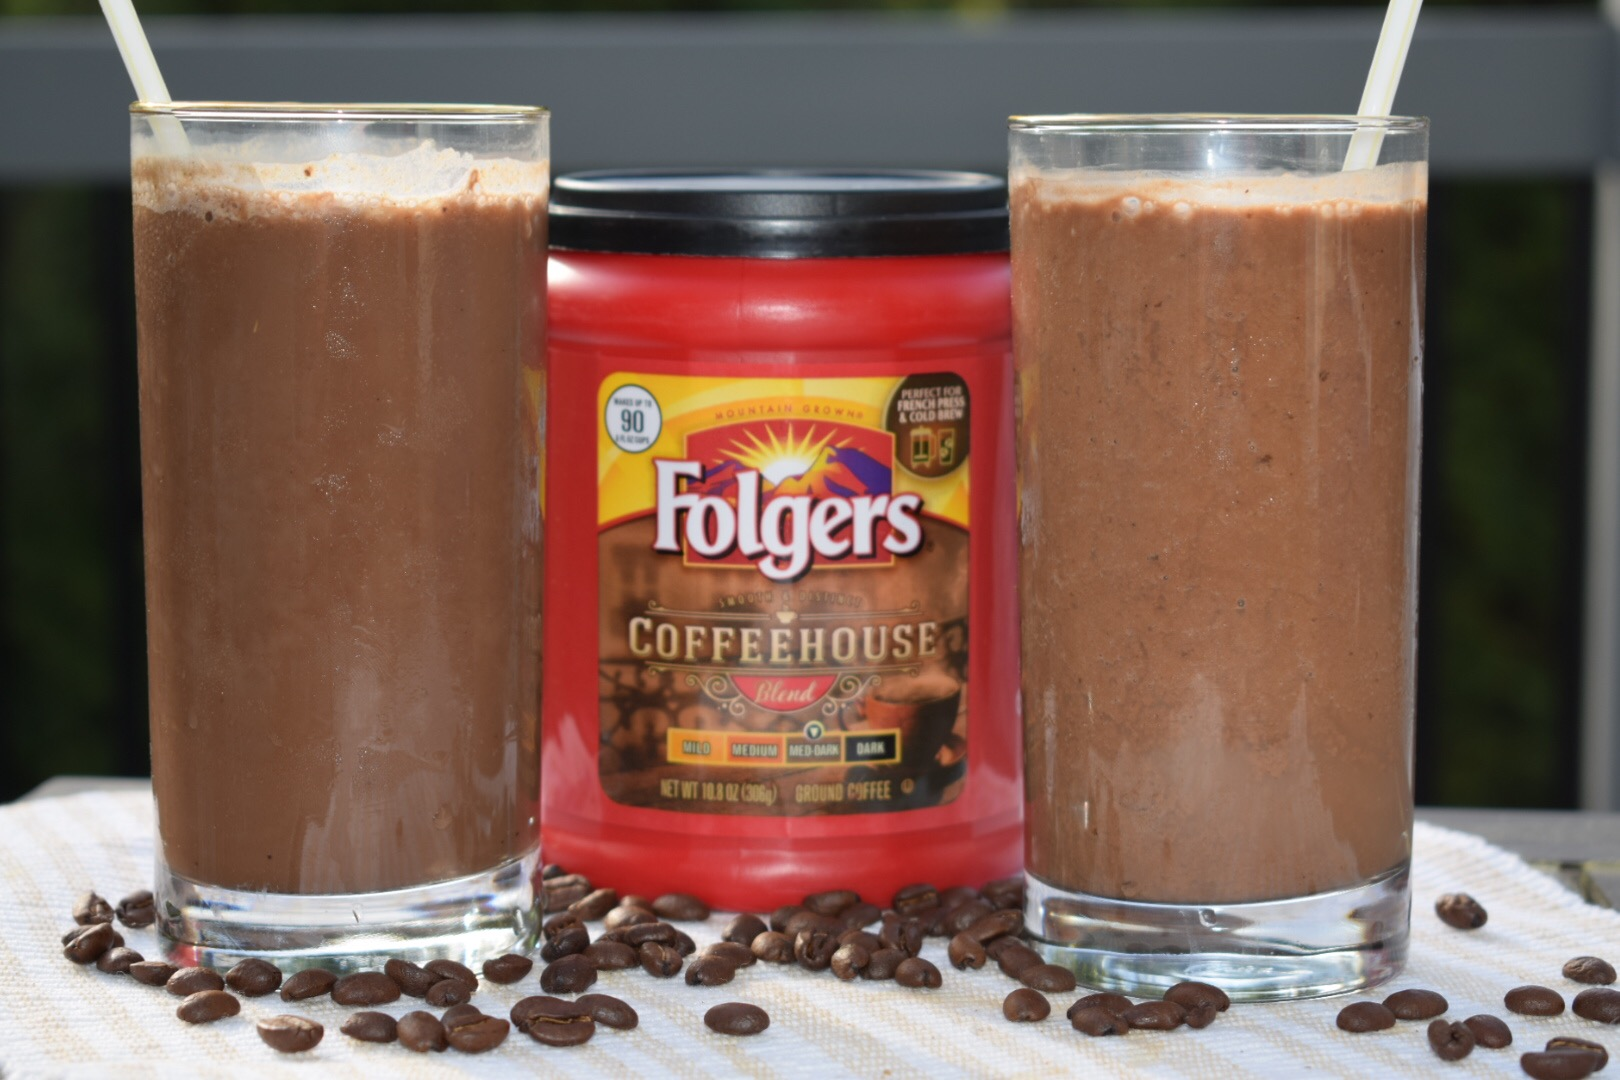 olgers Coffeehouse Chocolate Coffee Protein Smoothie